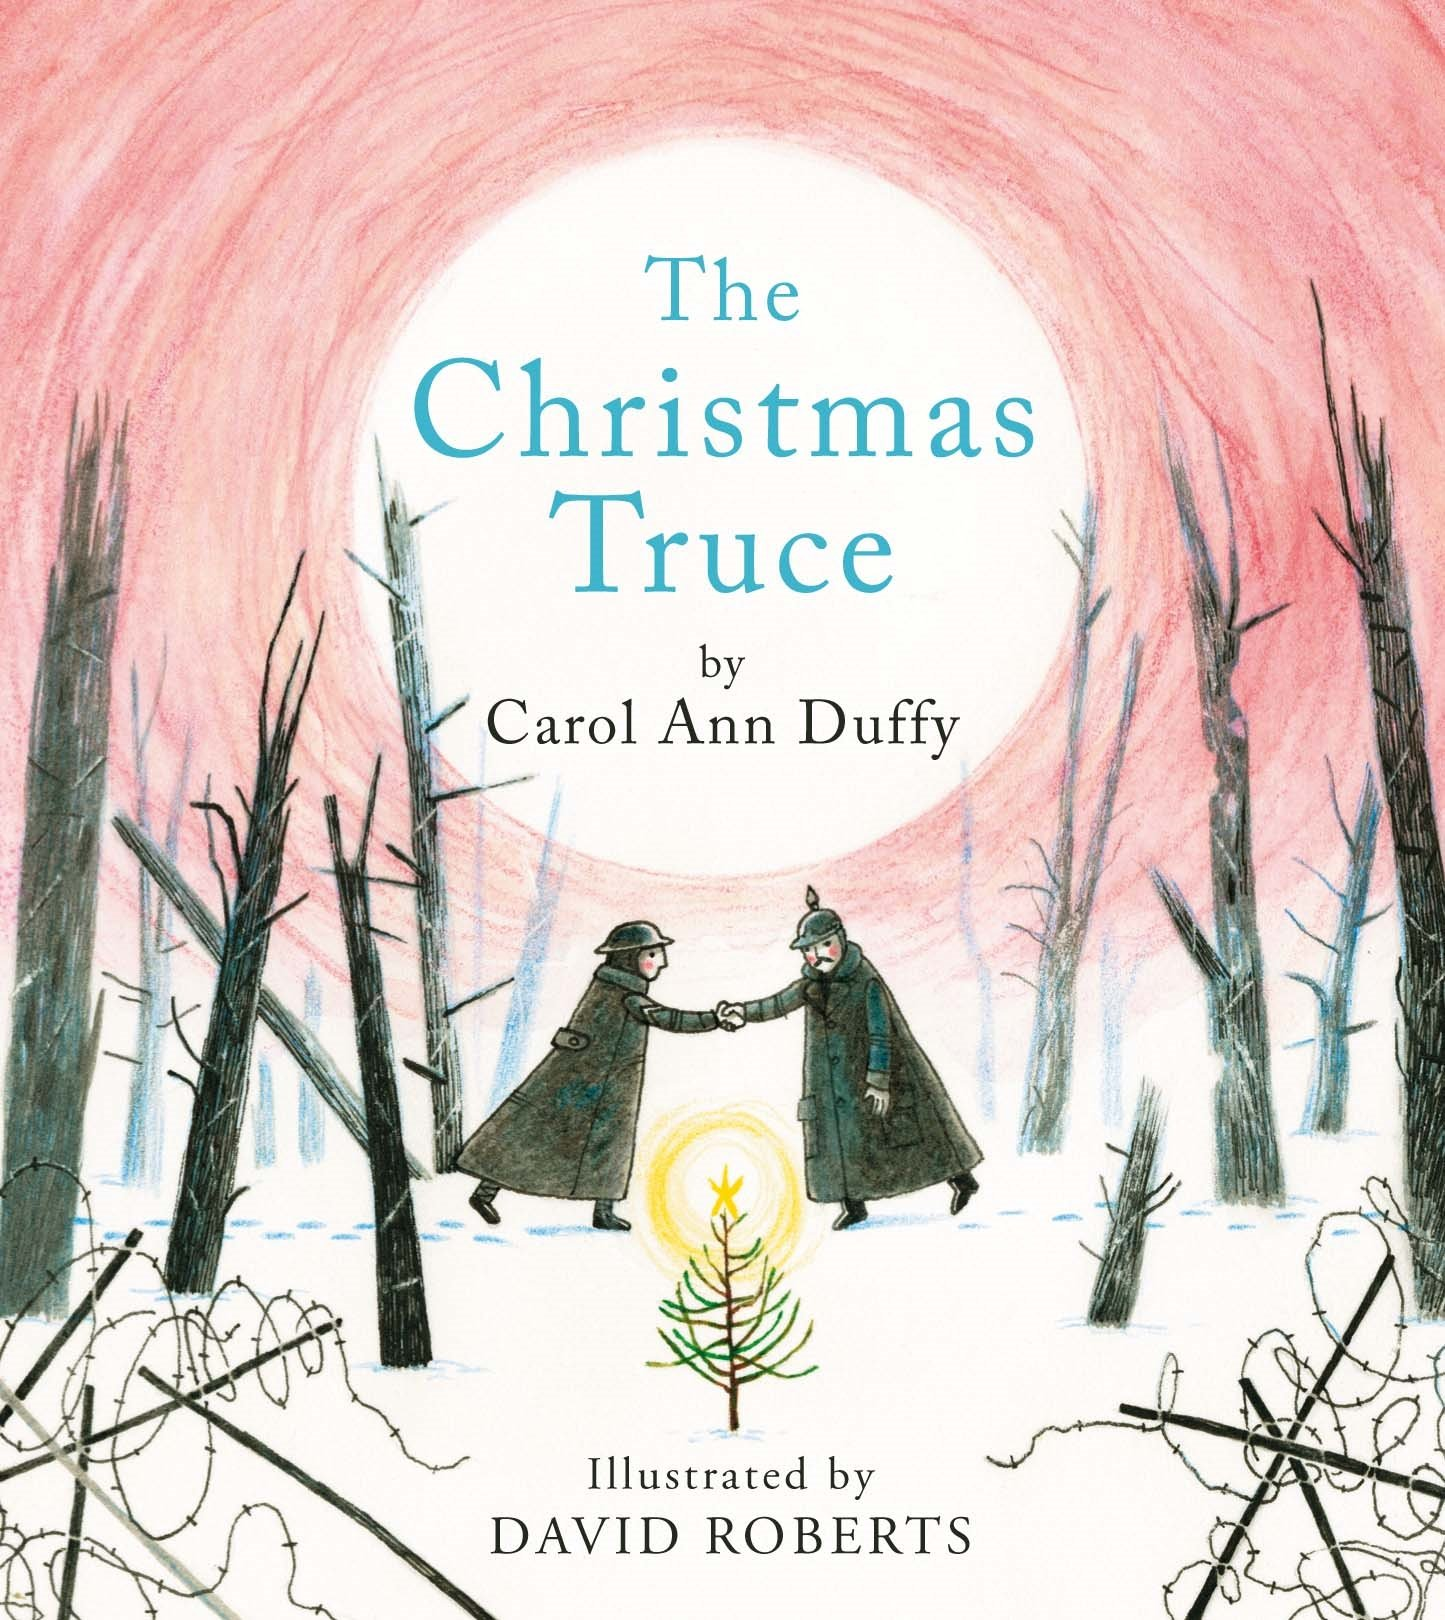 The Christmas Truce: Carol Ann Duffy: 9781447206408: Amazon.com: Books